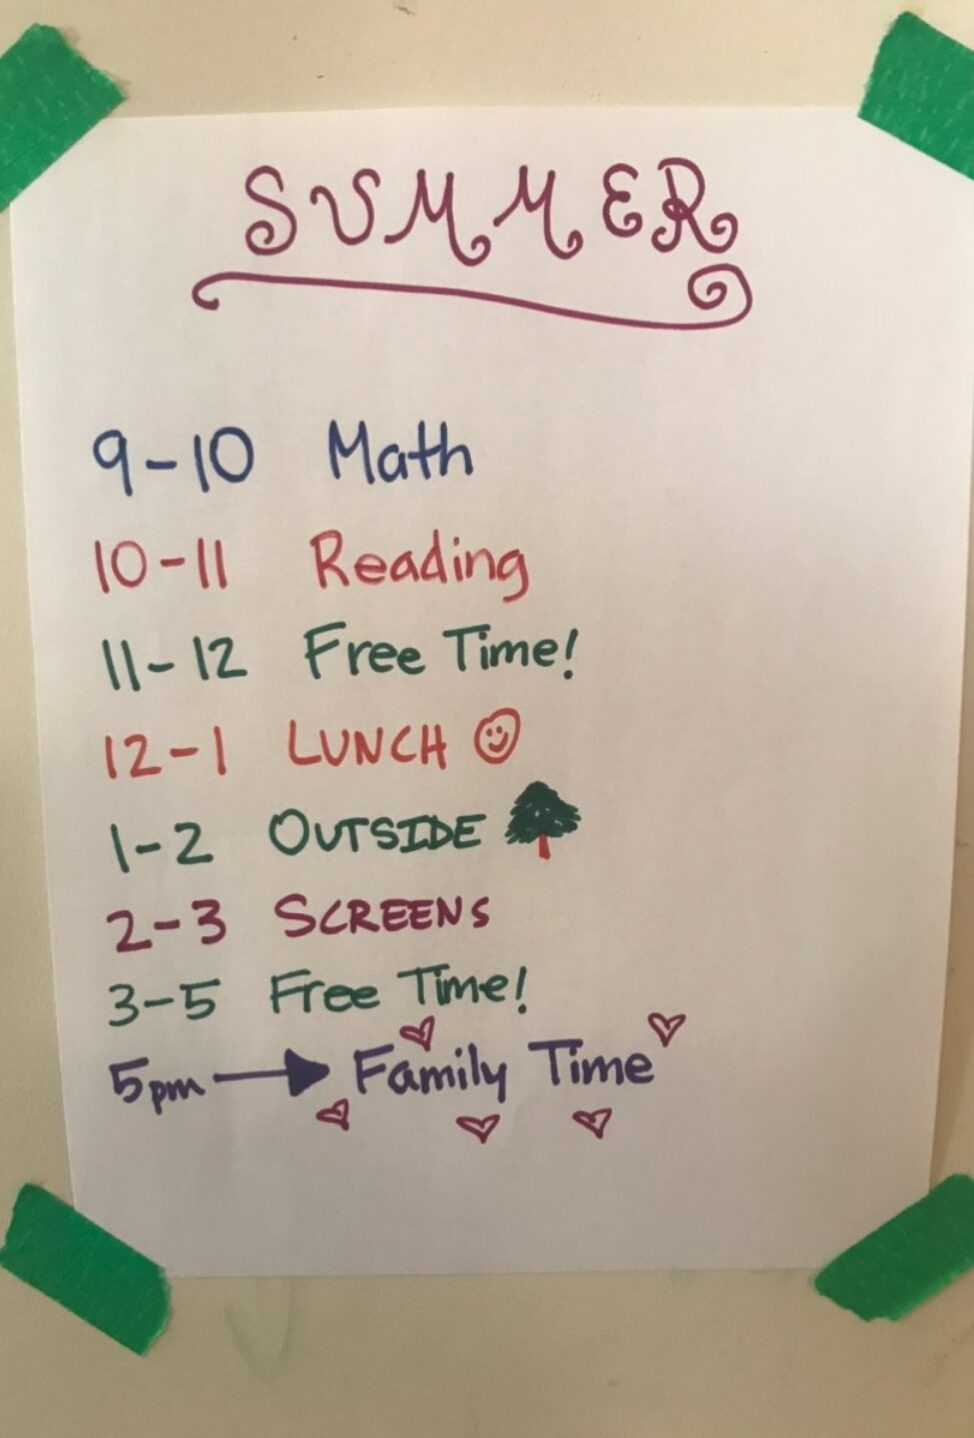 Summer Schedule - Screen-Free Play Ideas